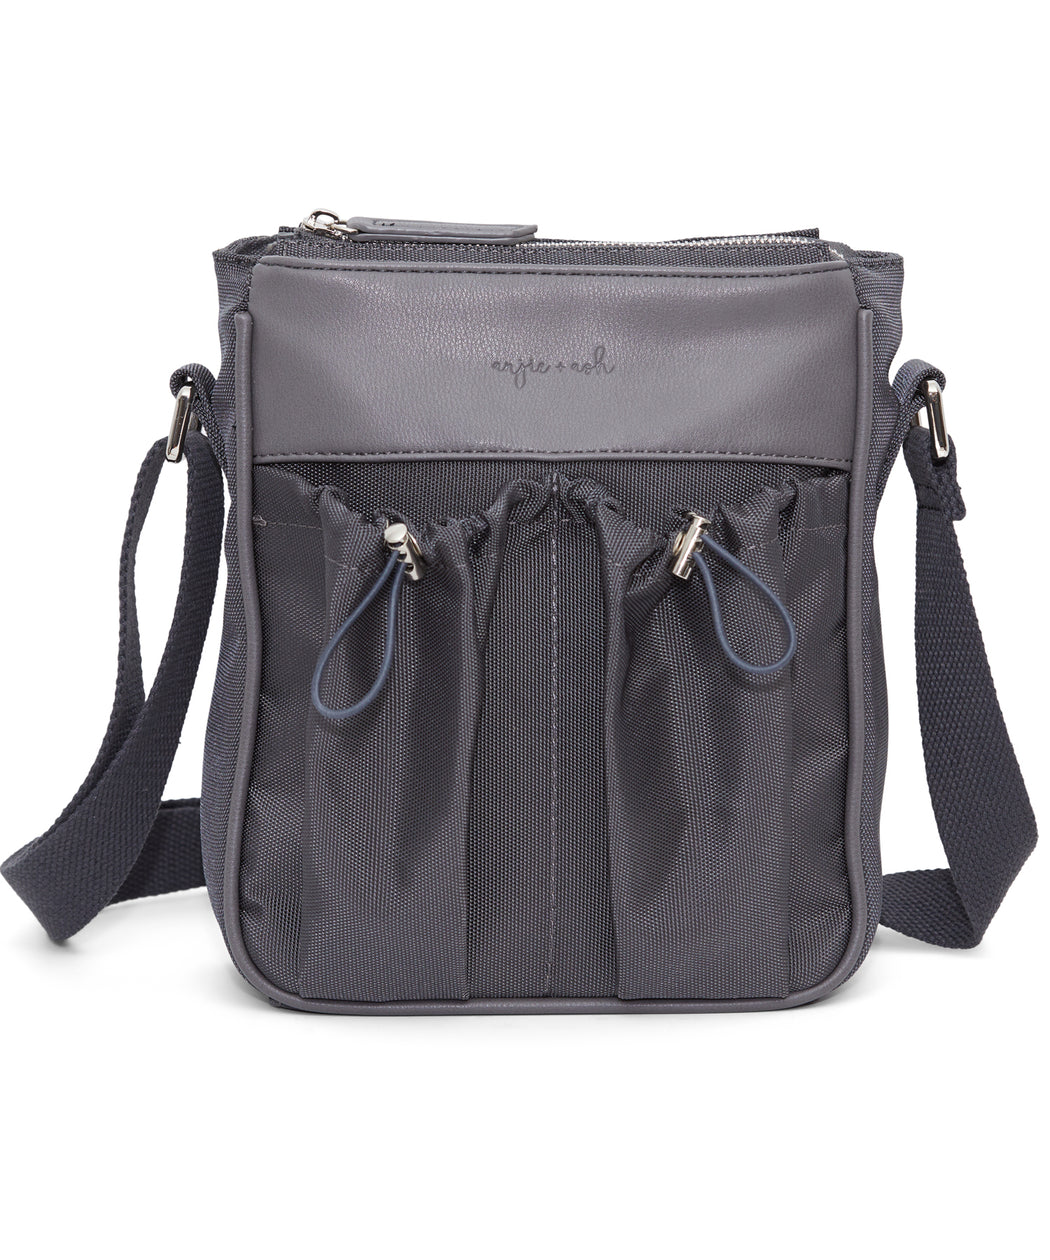 diaper bag crossbody in slate